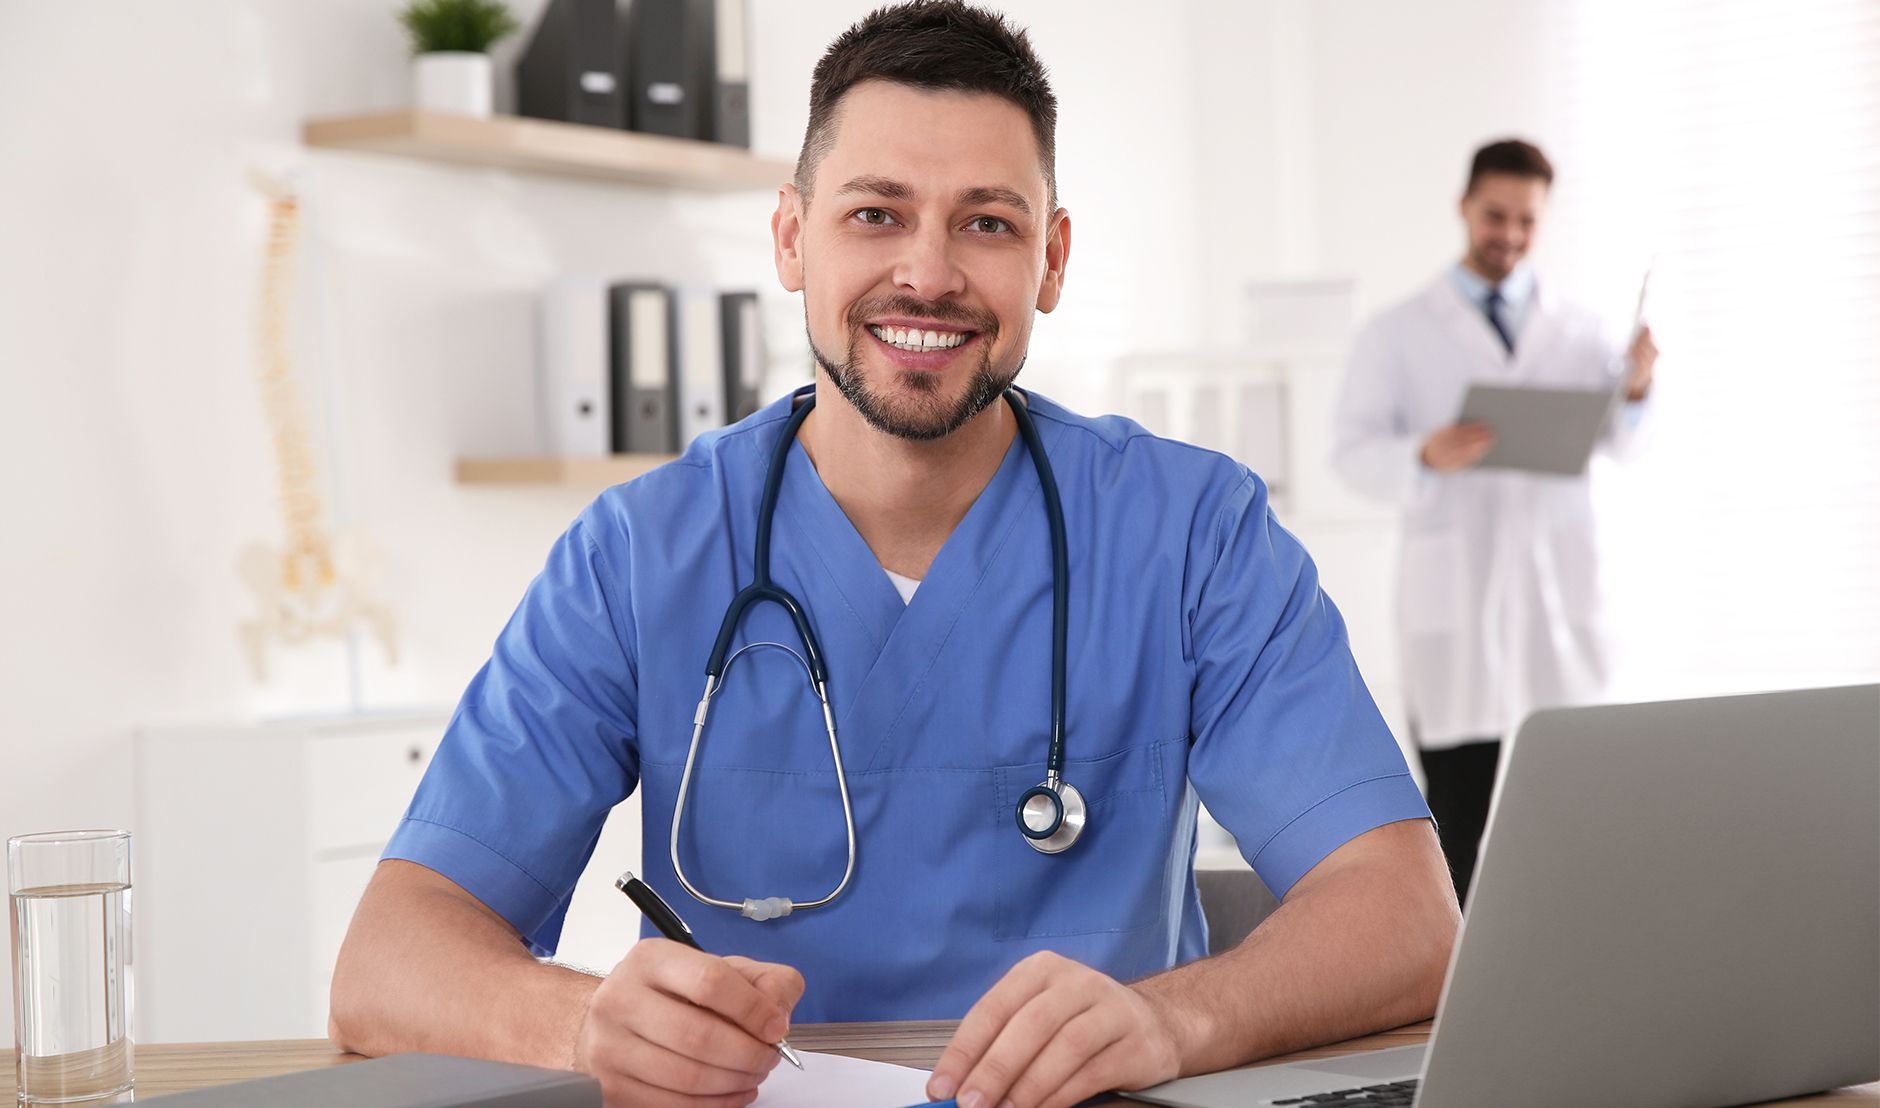 GP working - how to ace a doctor interview